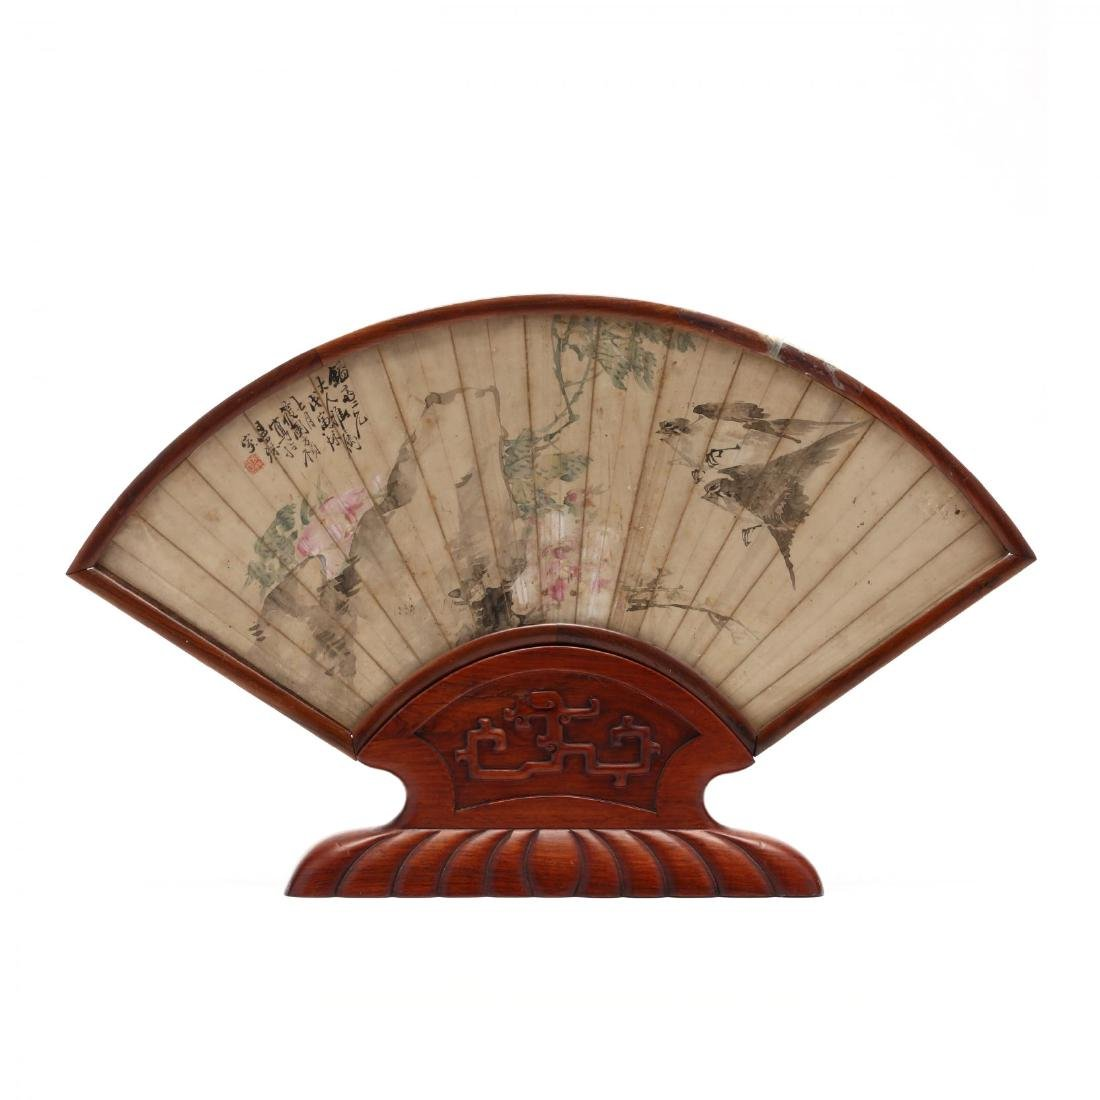 A Matched Pair of Chinese Framed Fan Face Paintings - 2